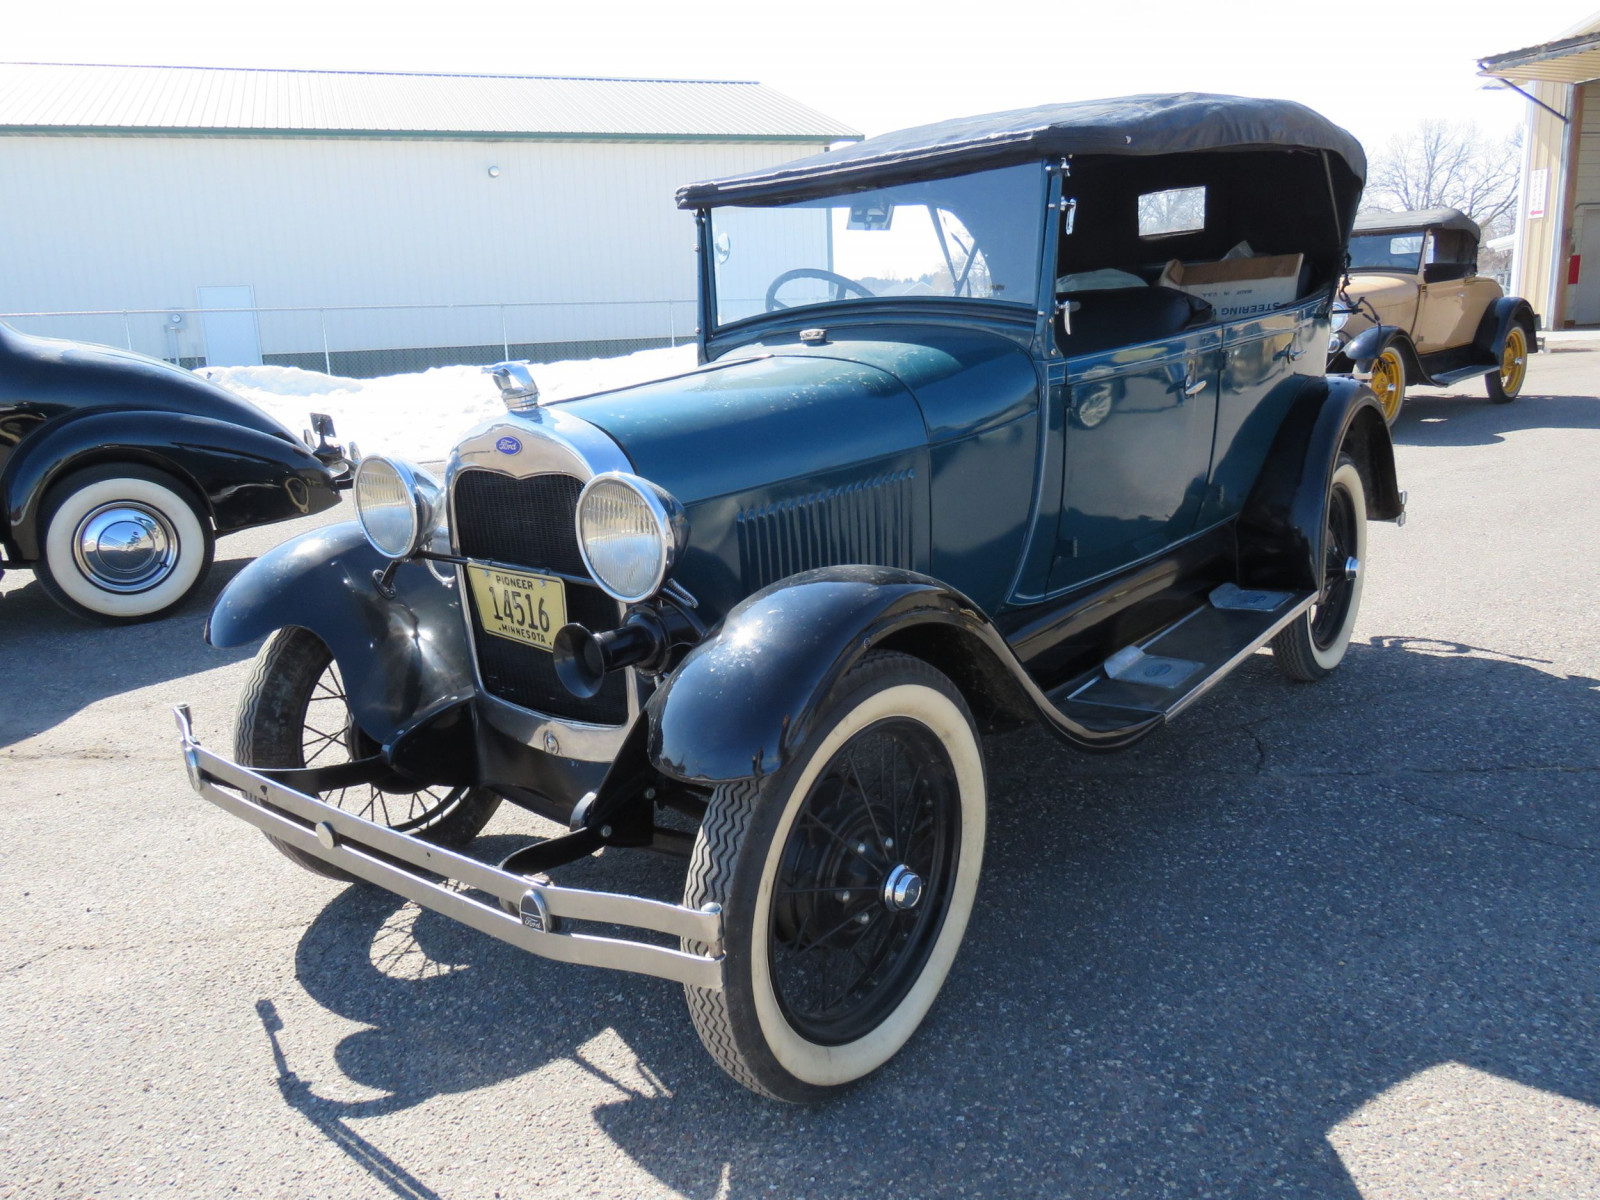 1929 Ford Model A Phaeton - Image 4